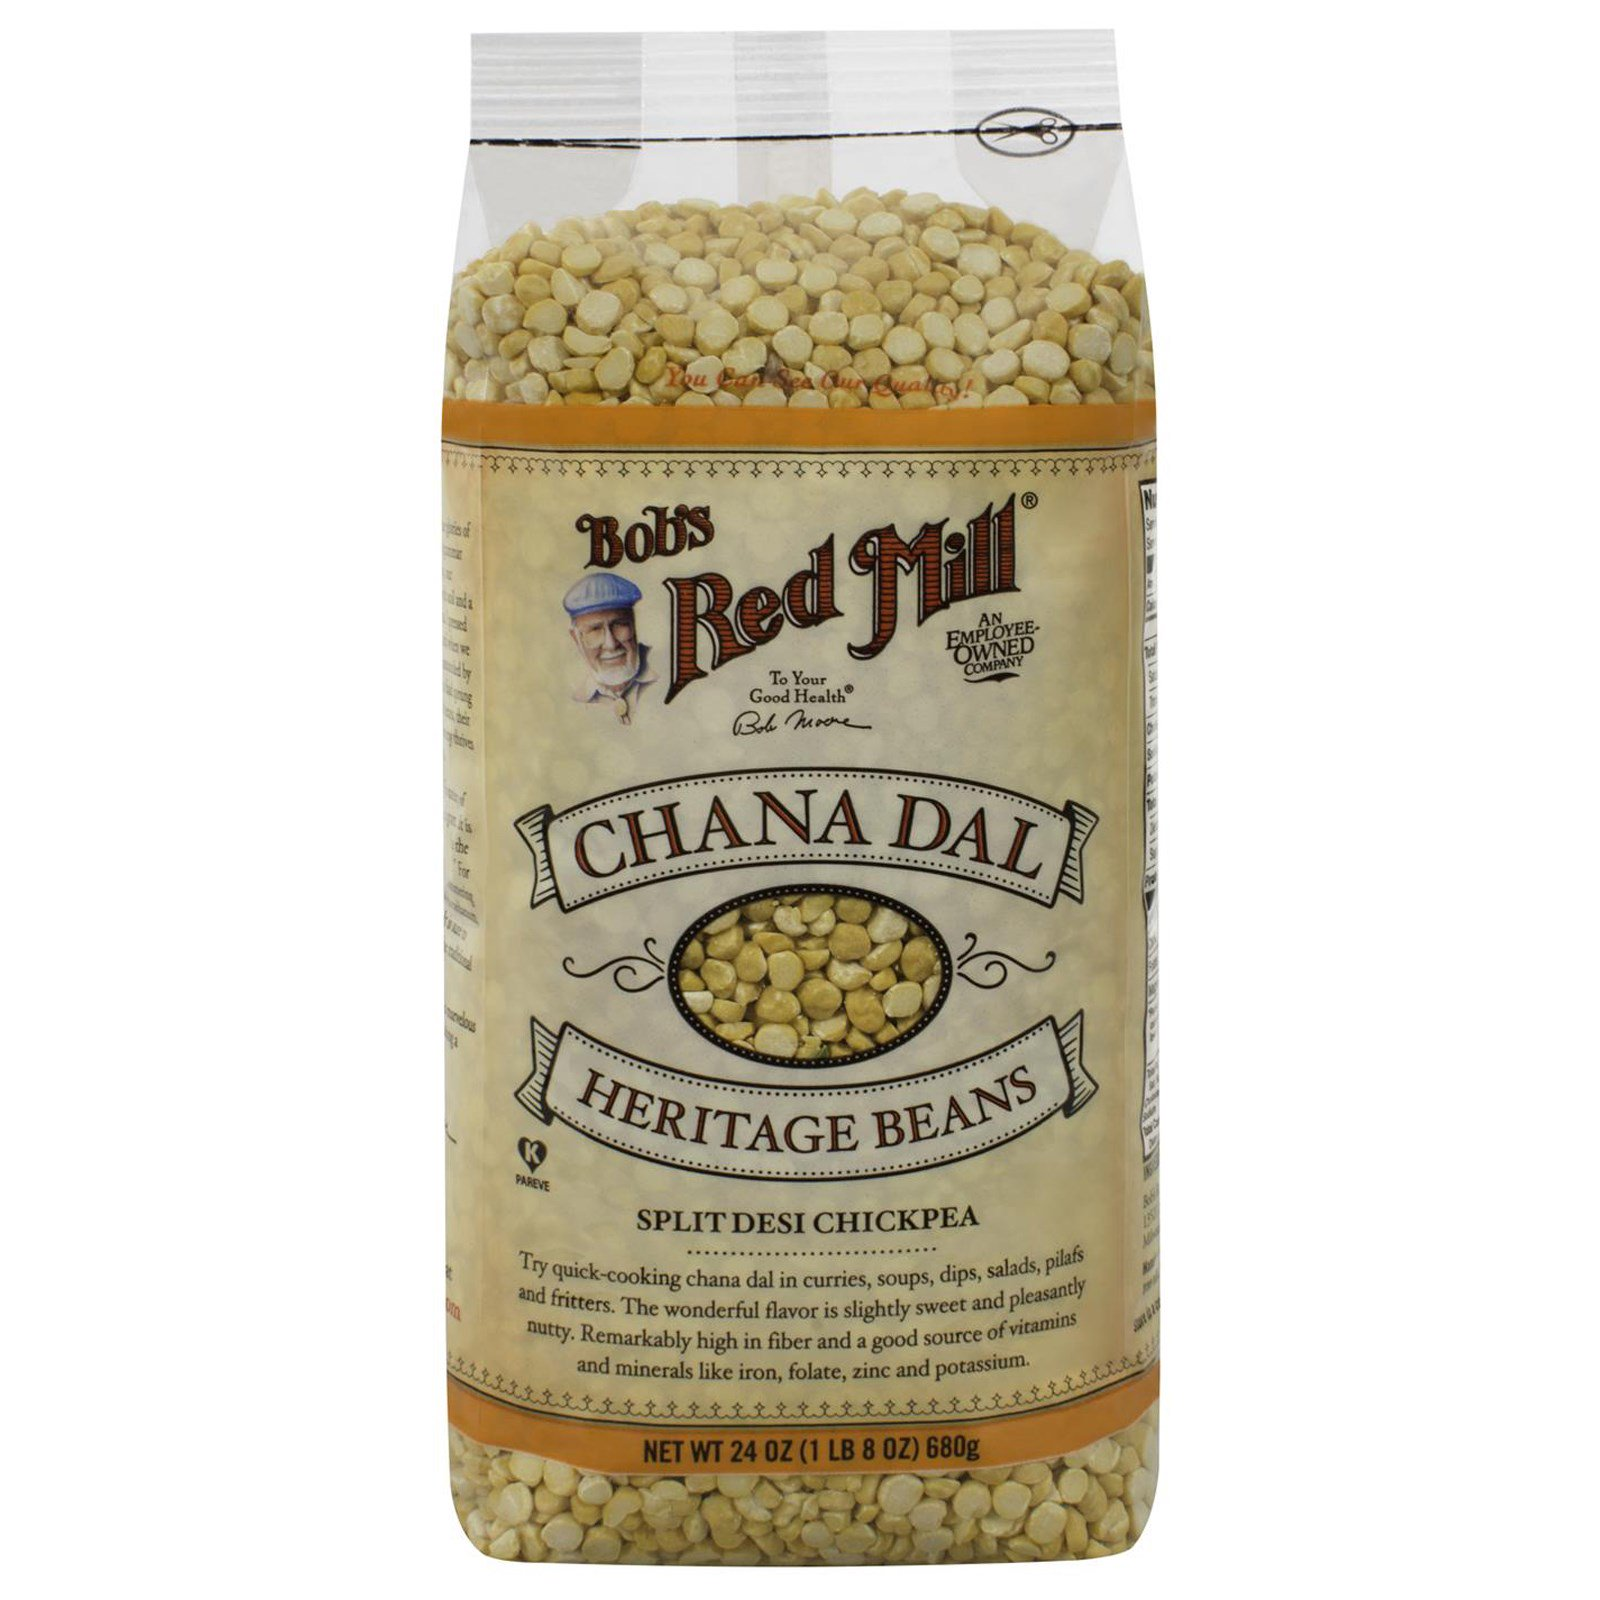 Bob's Red Mill, Chana Dal, Heritage Beans, 24 oz (pack of 1) by